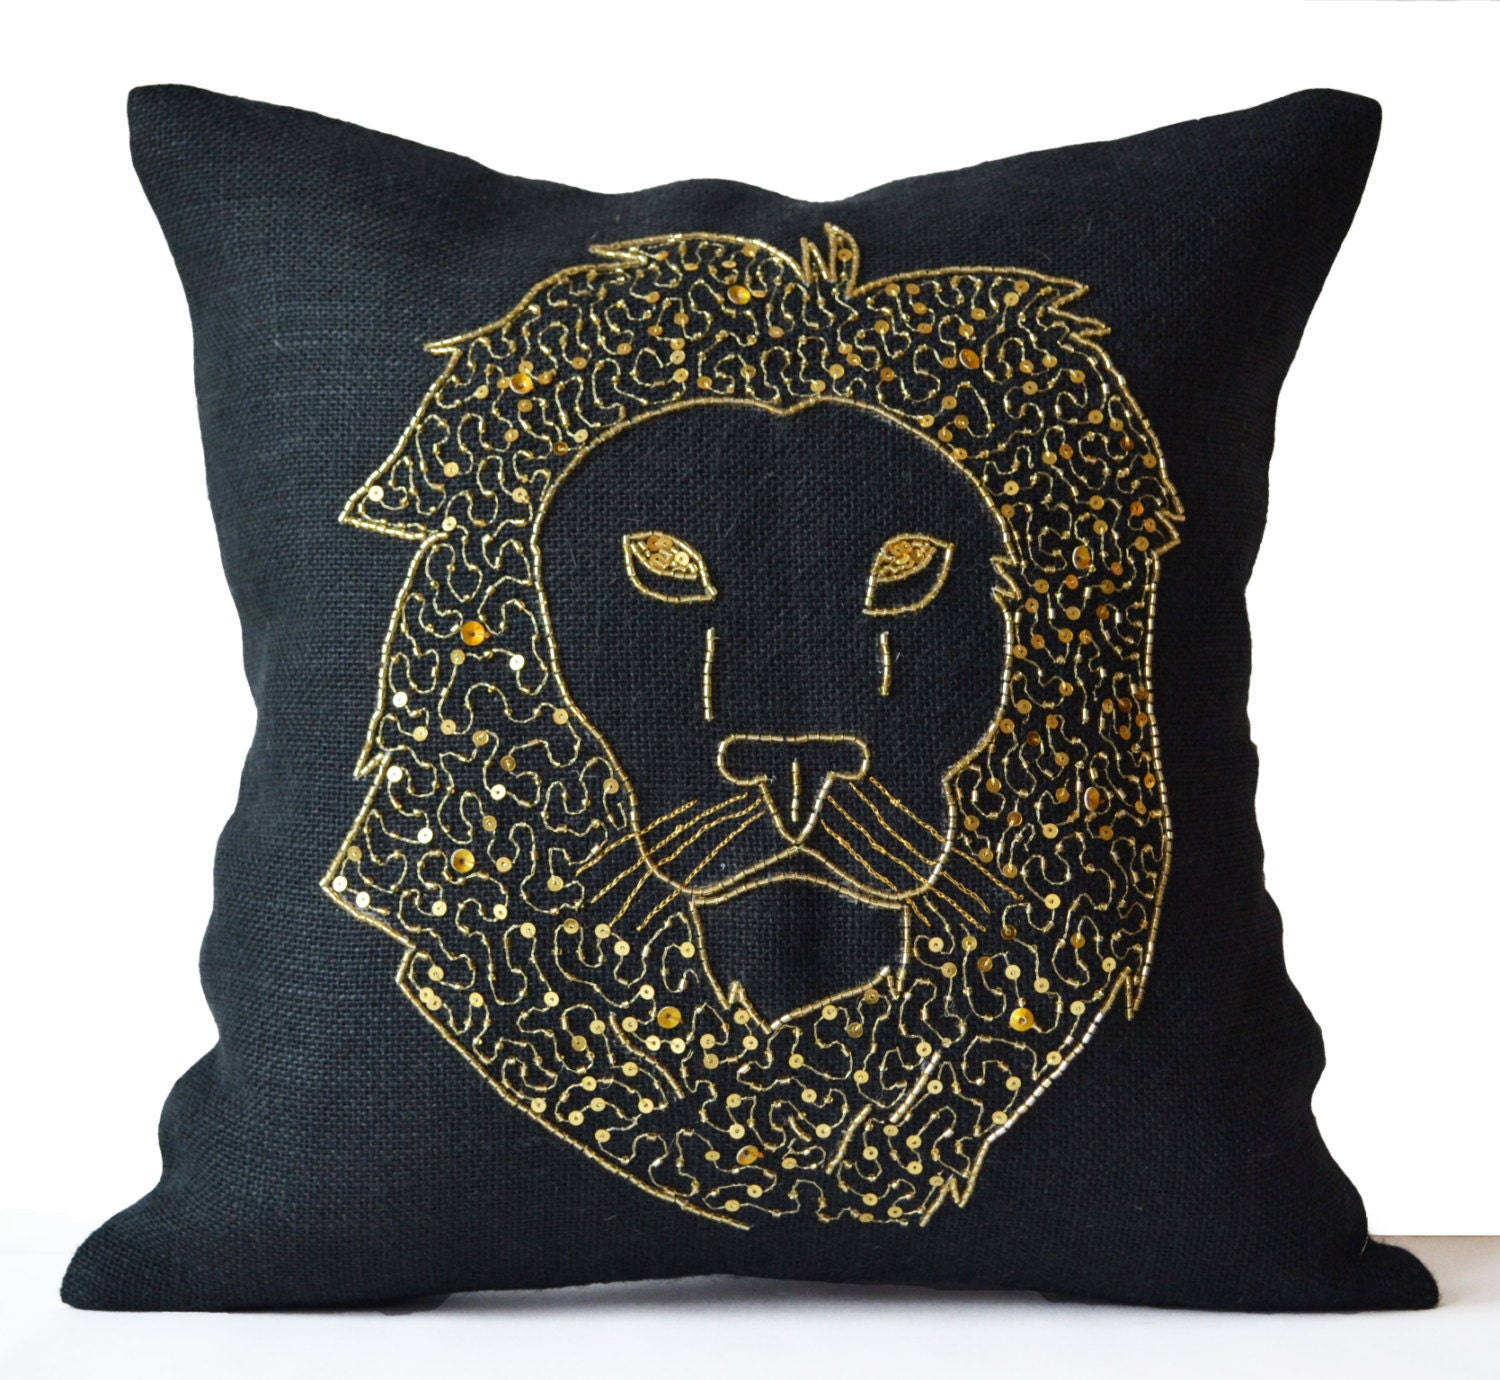 Lion pillows animal pillow embroidered in gold by